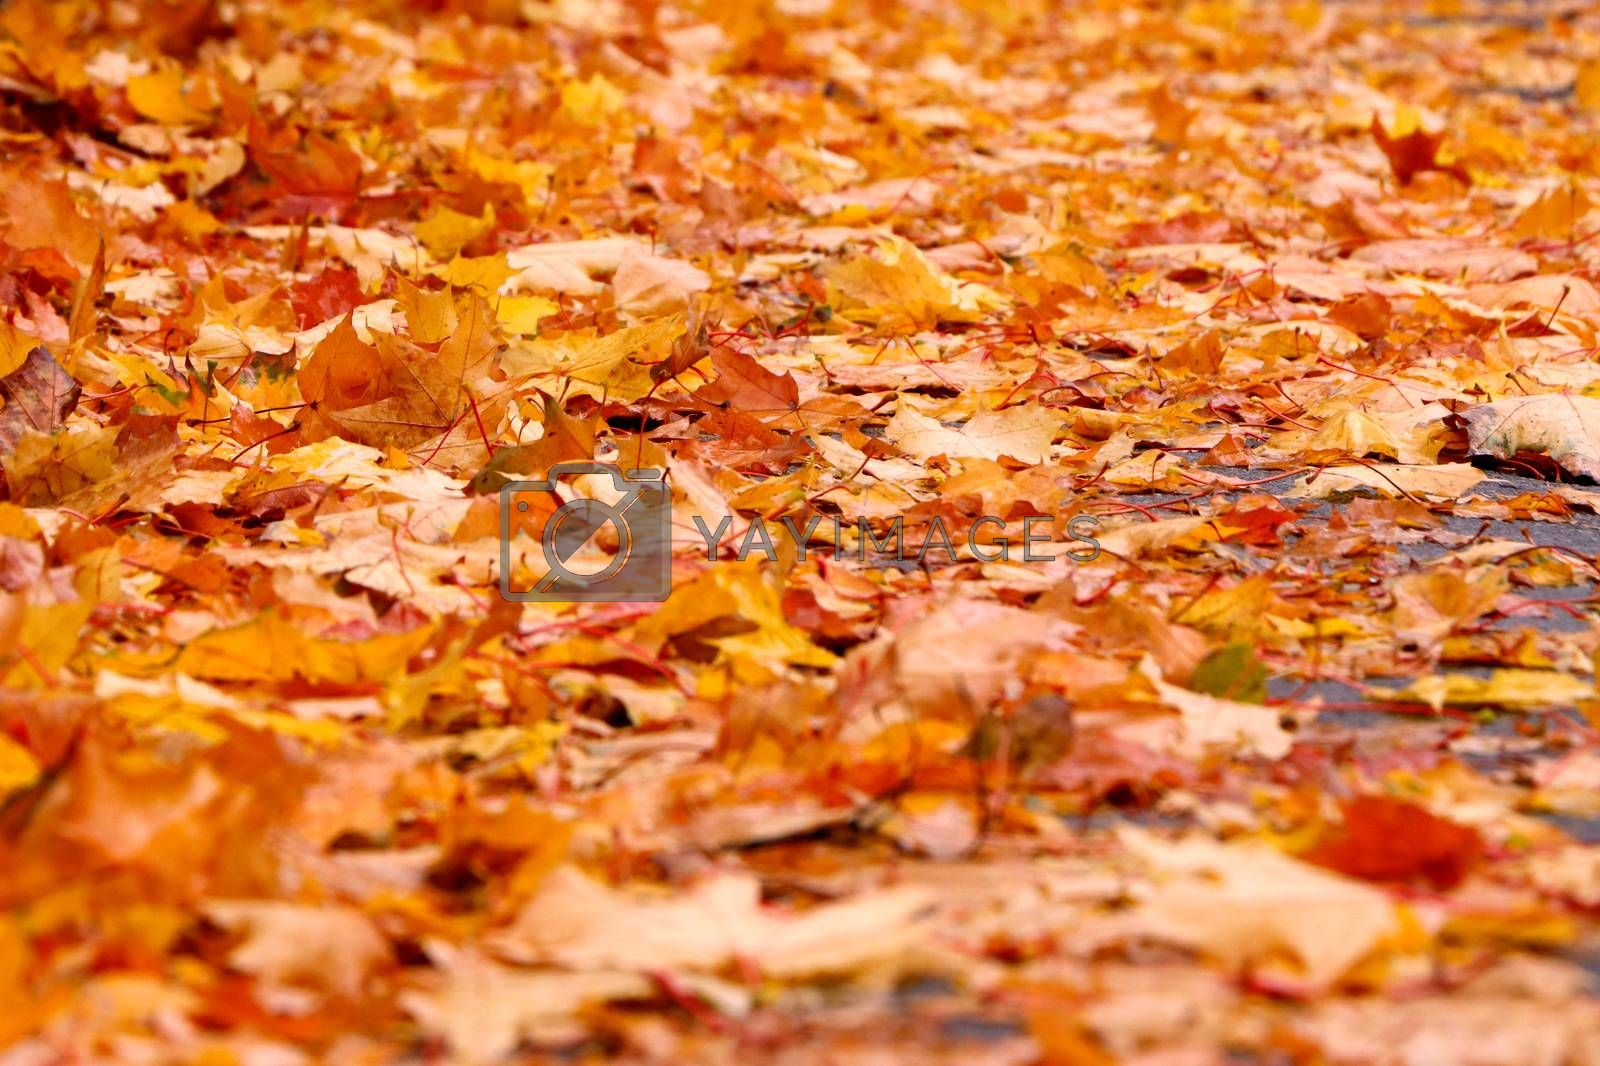 Autumn background from lot of colorful fallen yellow leaves on the ground outdoors, close up view